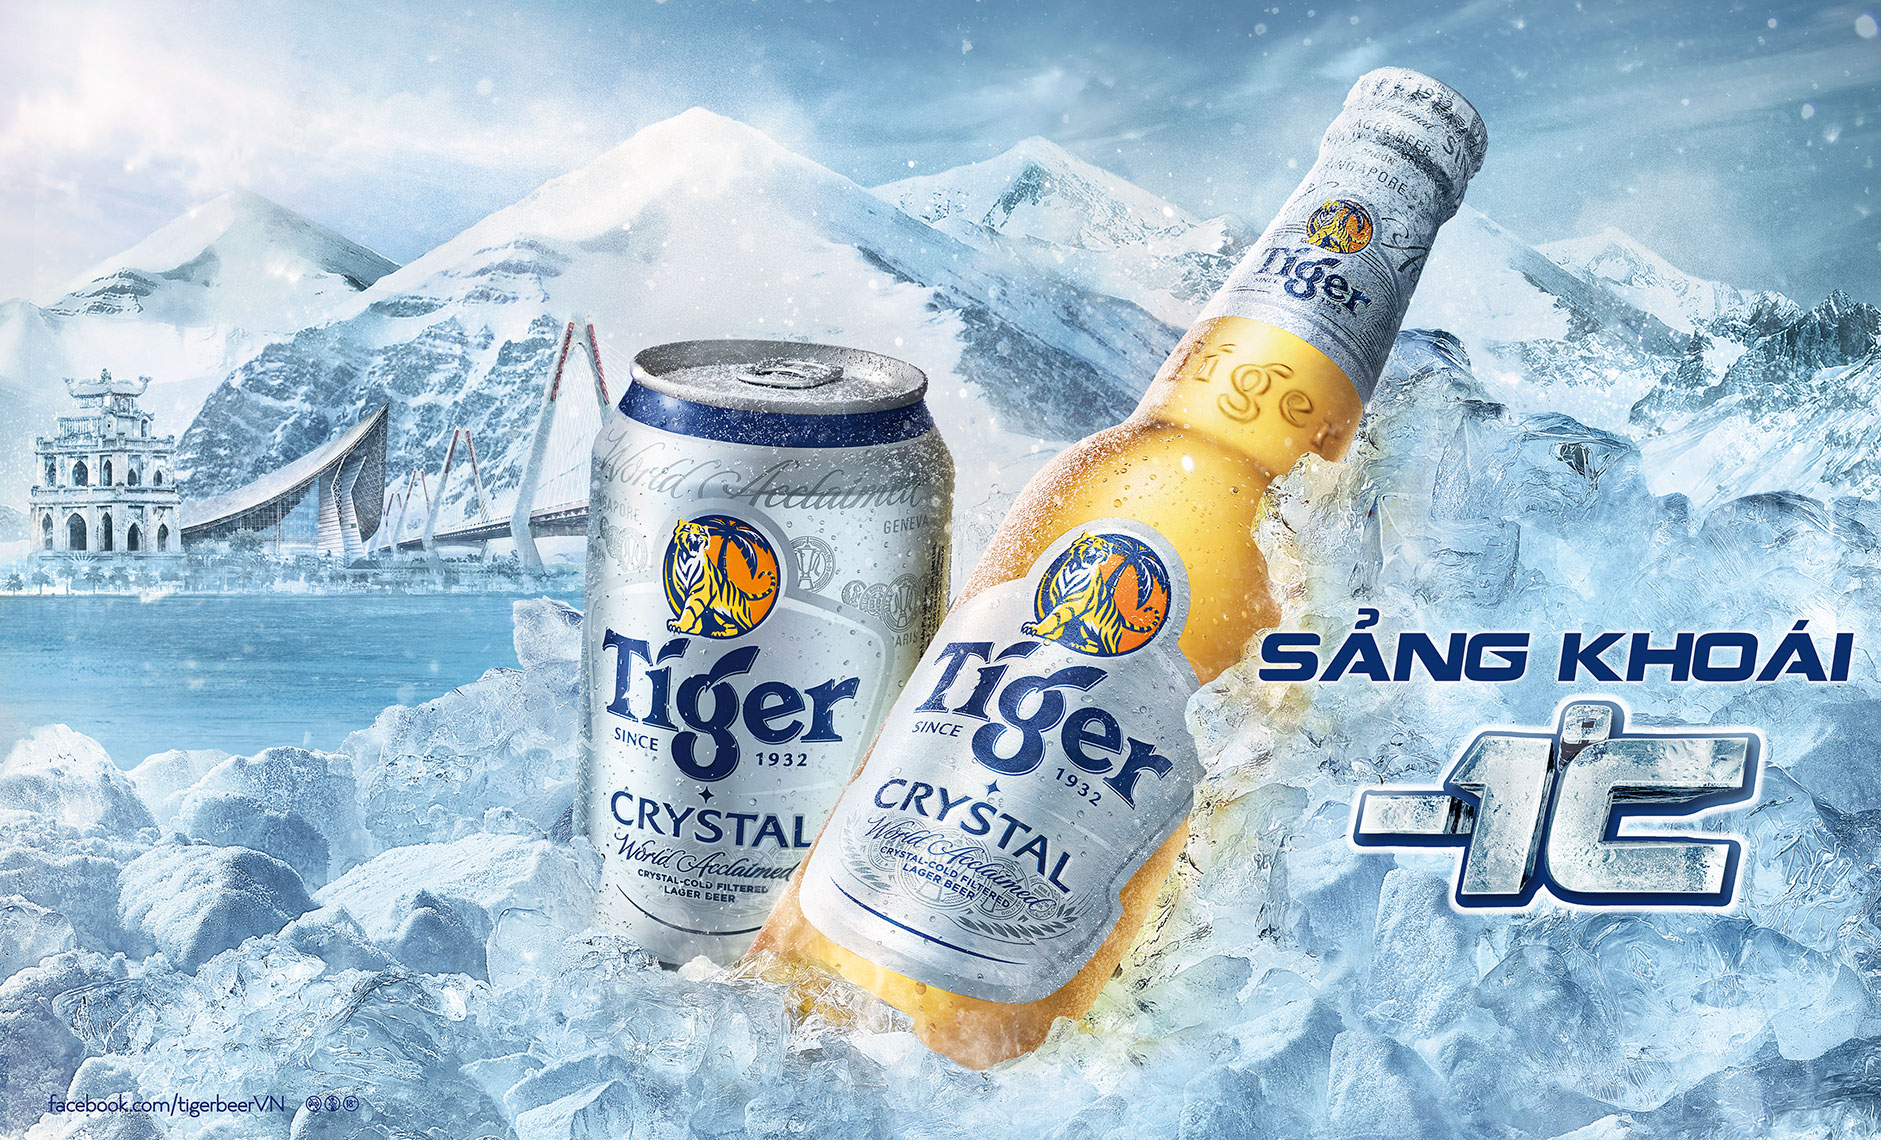 t075_Tiger_Beer_Crystal_BiteStudio_WingChan